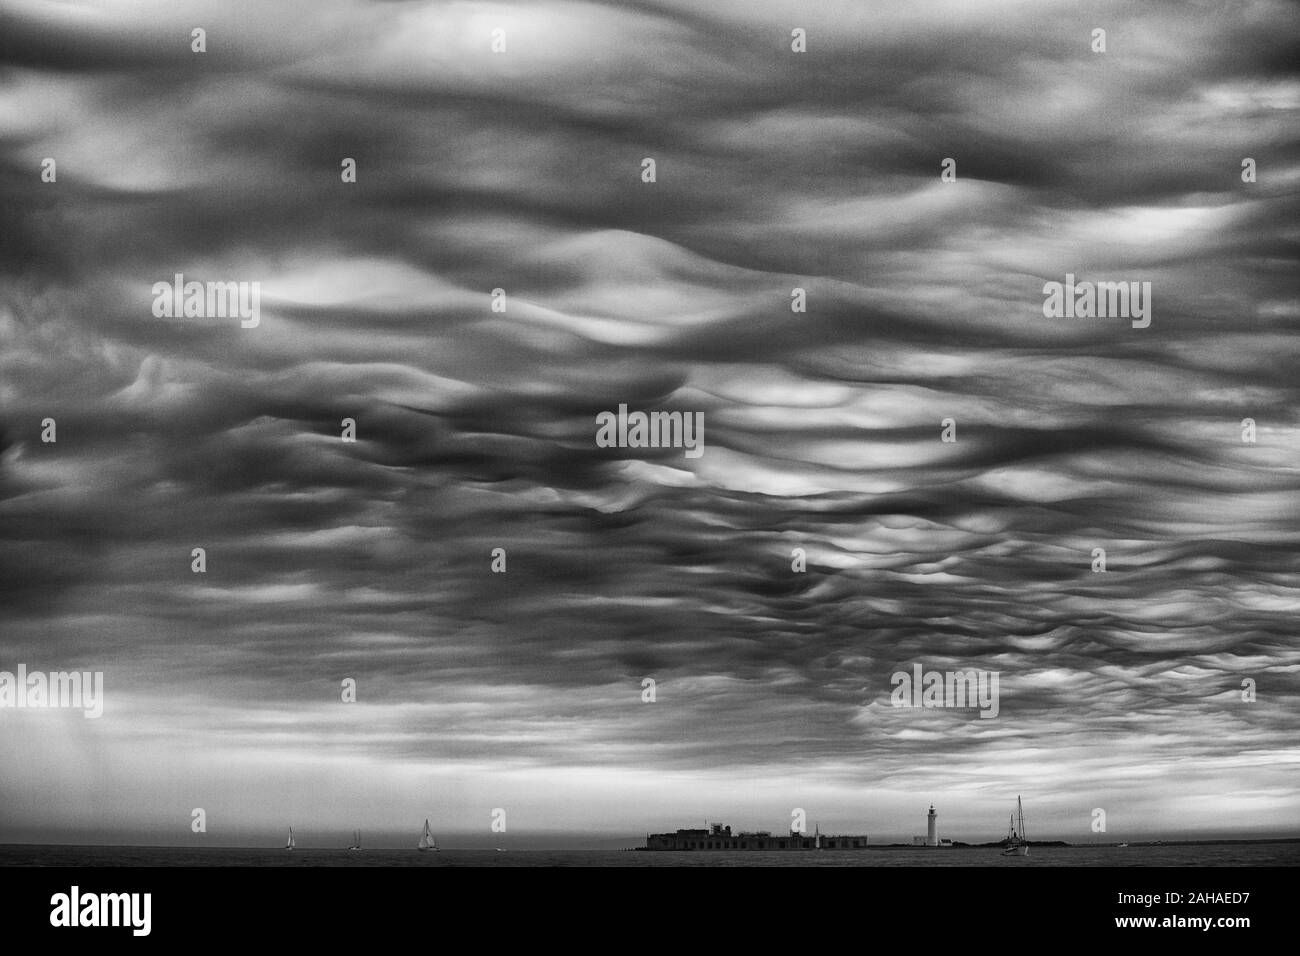 28.05.2017, Yarmouth, Isle of Wight, Great Britain - Thunderclouds over the Solent with view of Hurst Castle. 00S170528D093CAROEX.JPG [MODEL RELEASE: Stock Photo